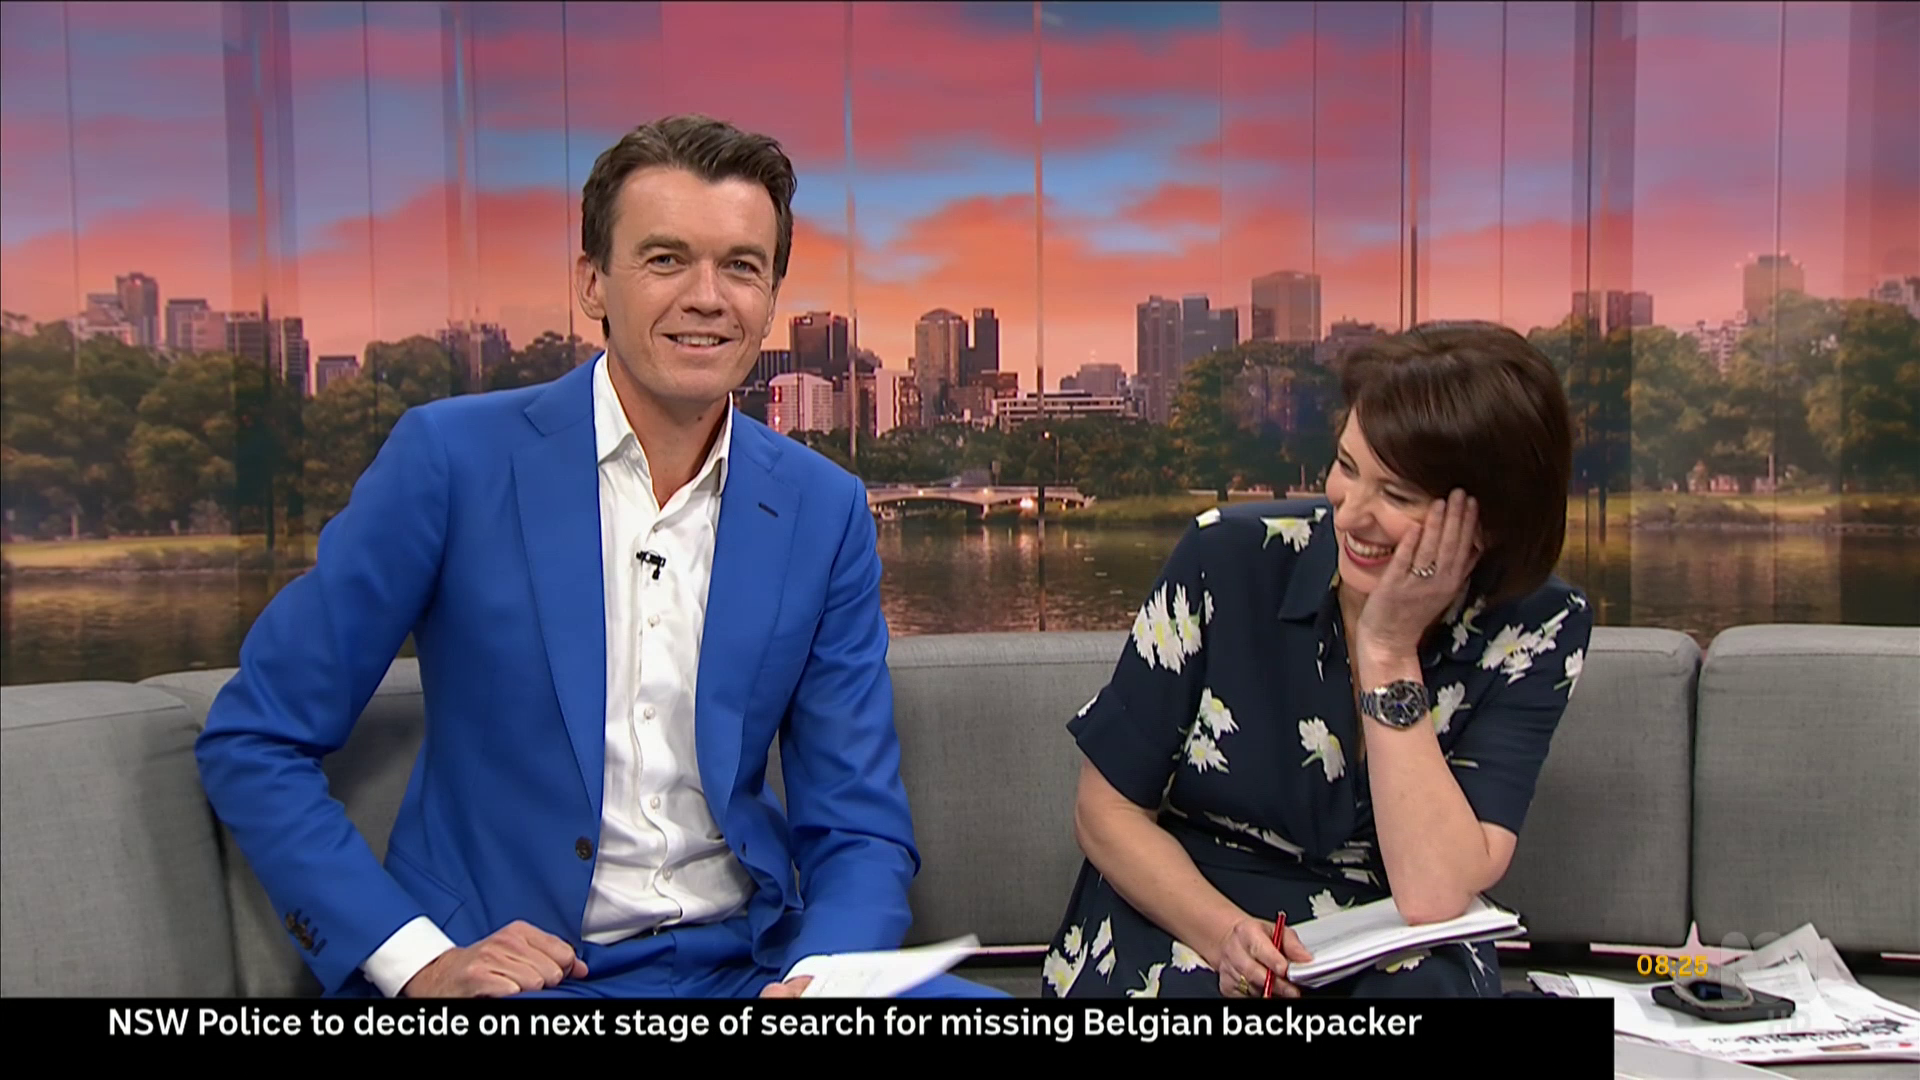 Virginia Trioli  gets the giggles during the introduction to a serious story on  ABC News Breakfast   IMAGE: ABC